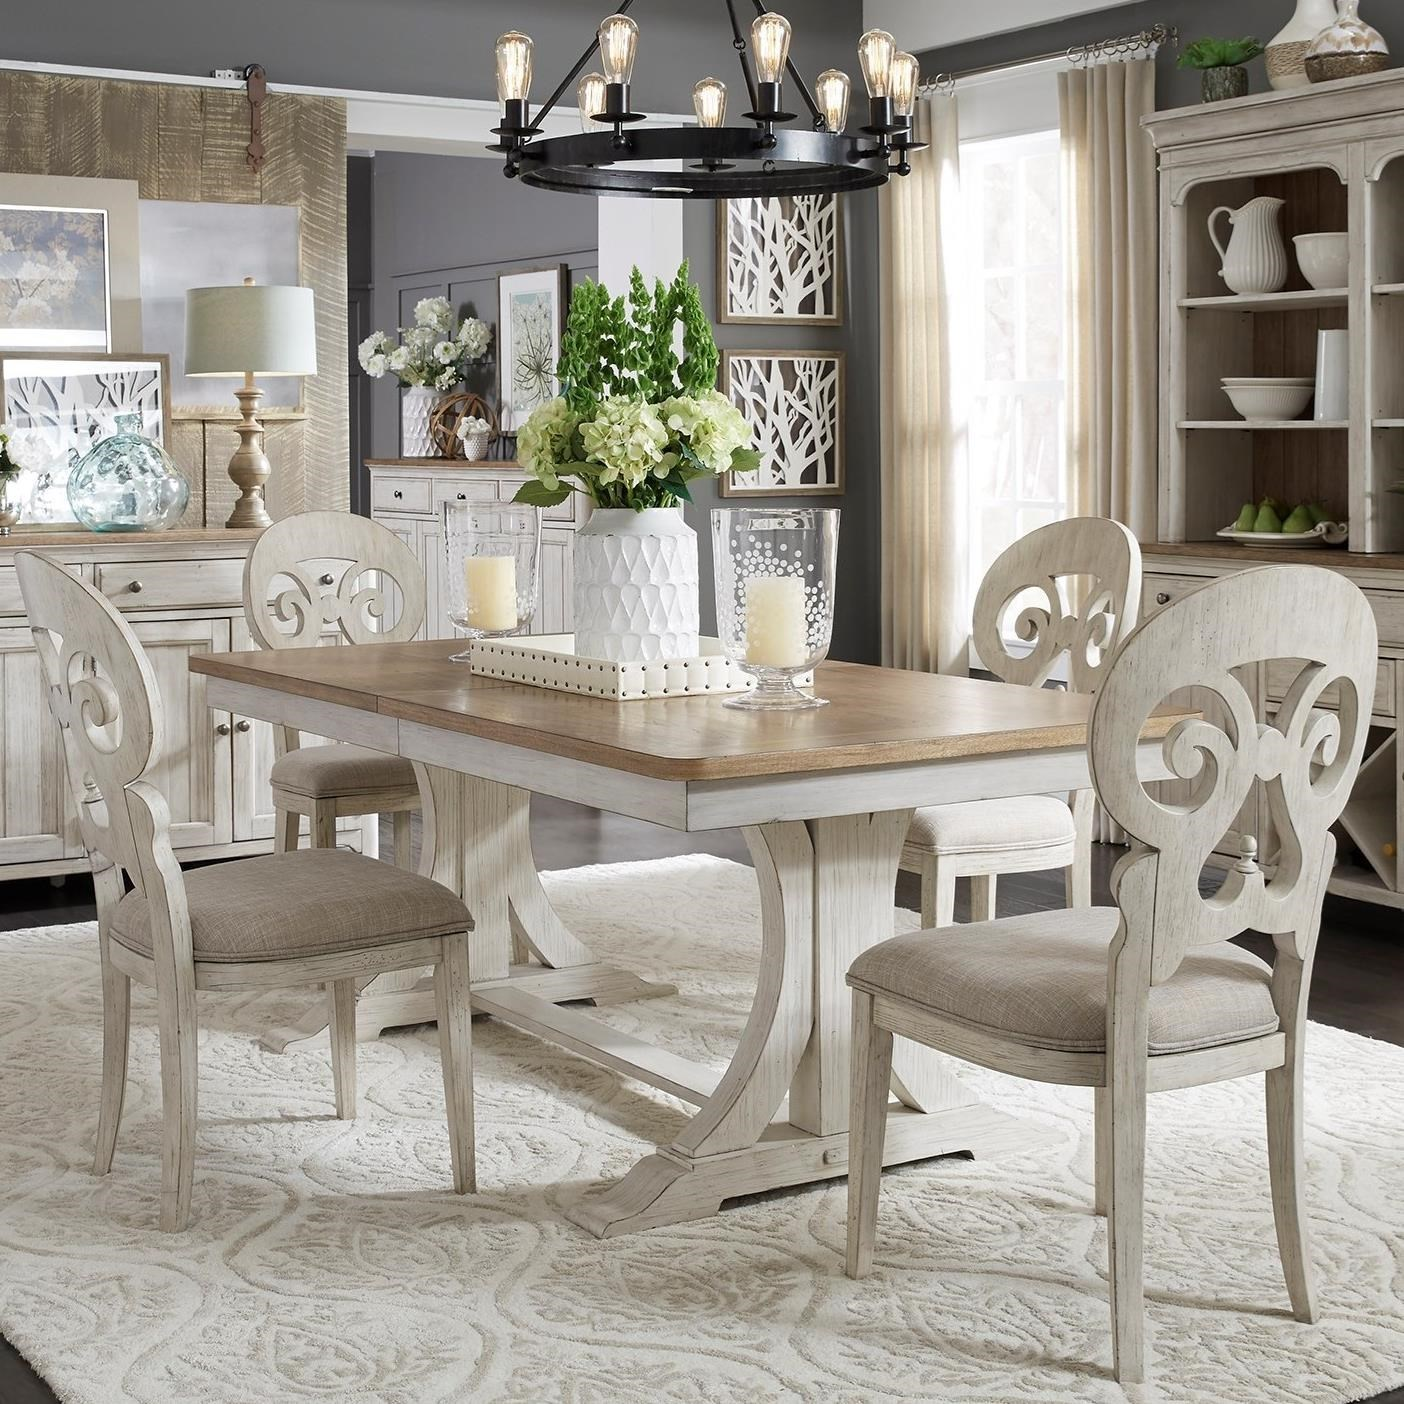 liberty furniture dining table. Liberty Furniture Farmhouse Reimagined Relaxed Vintage 5-Piece Trestle Table Set Dining I